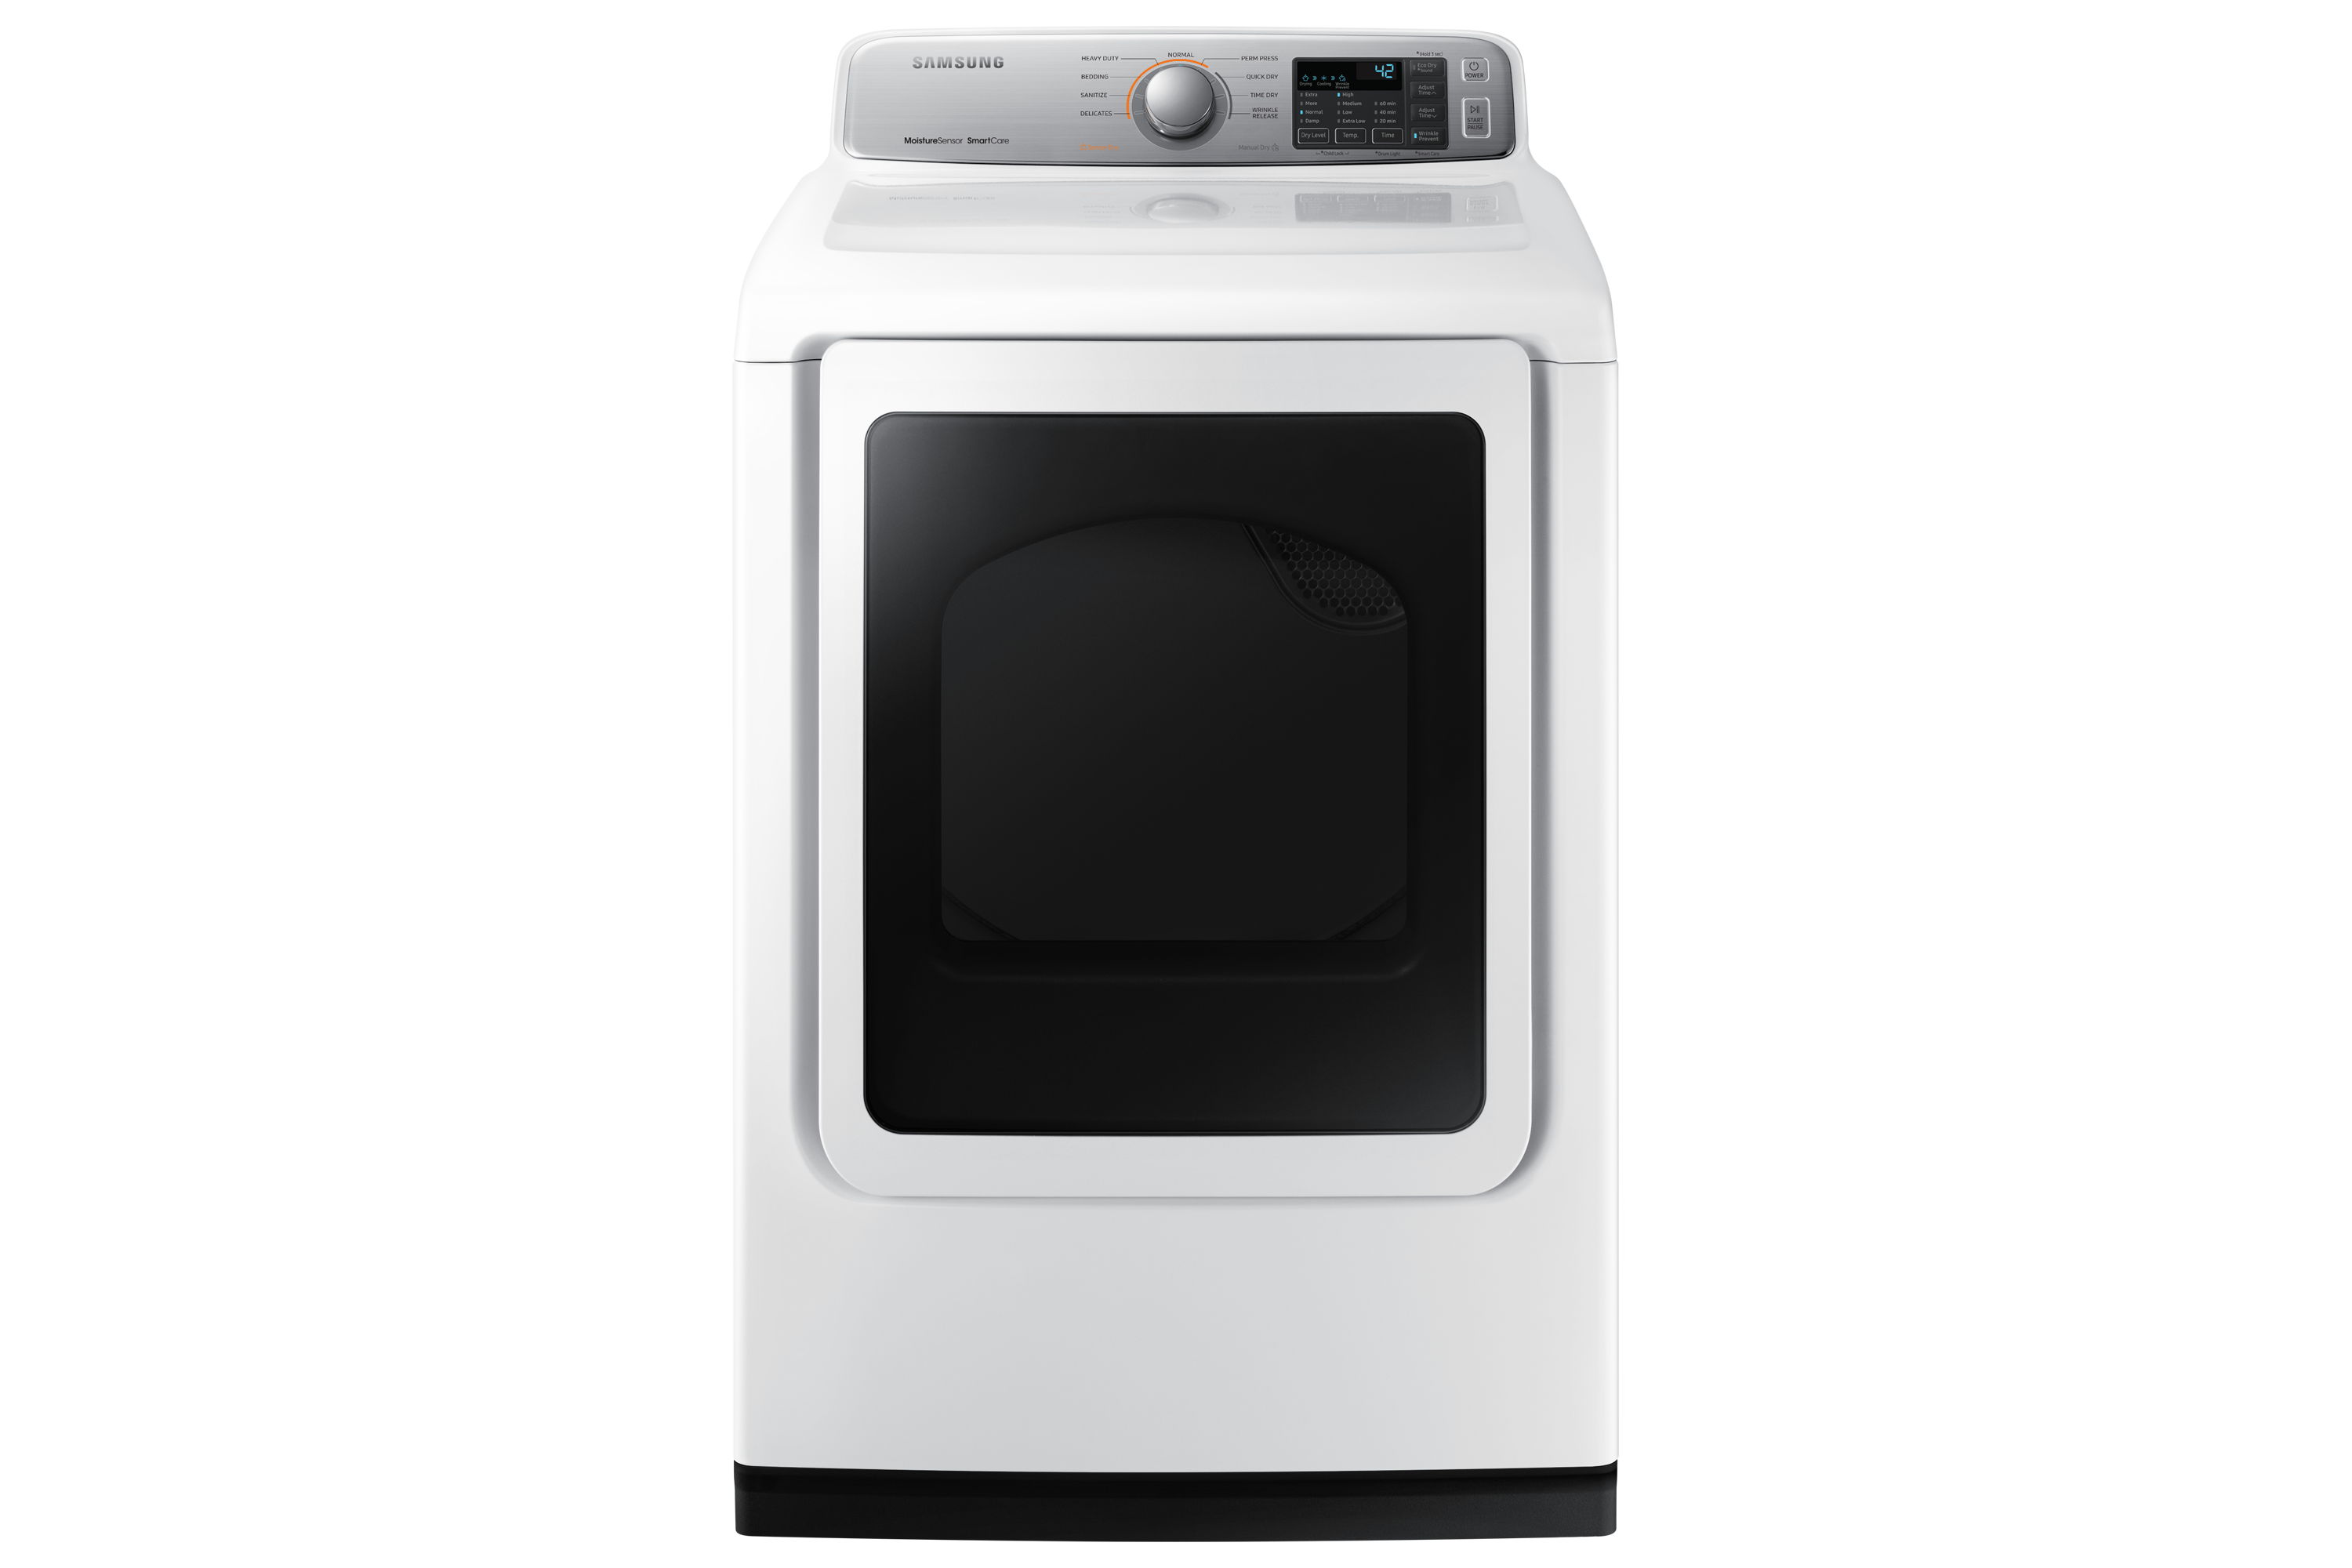 7.4 cu.ft. Dryer with Smart Care, DVE50N7350W/AC